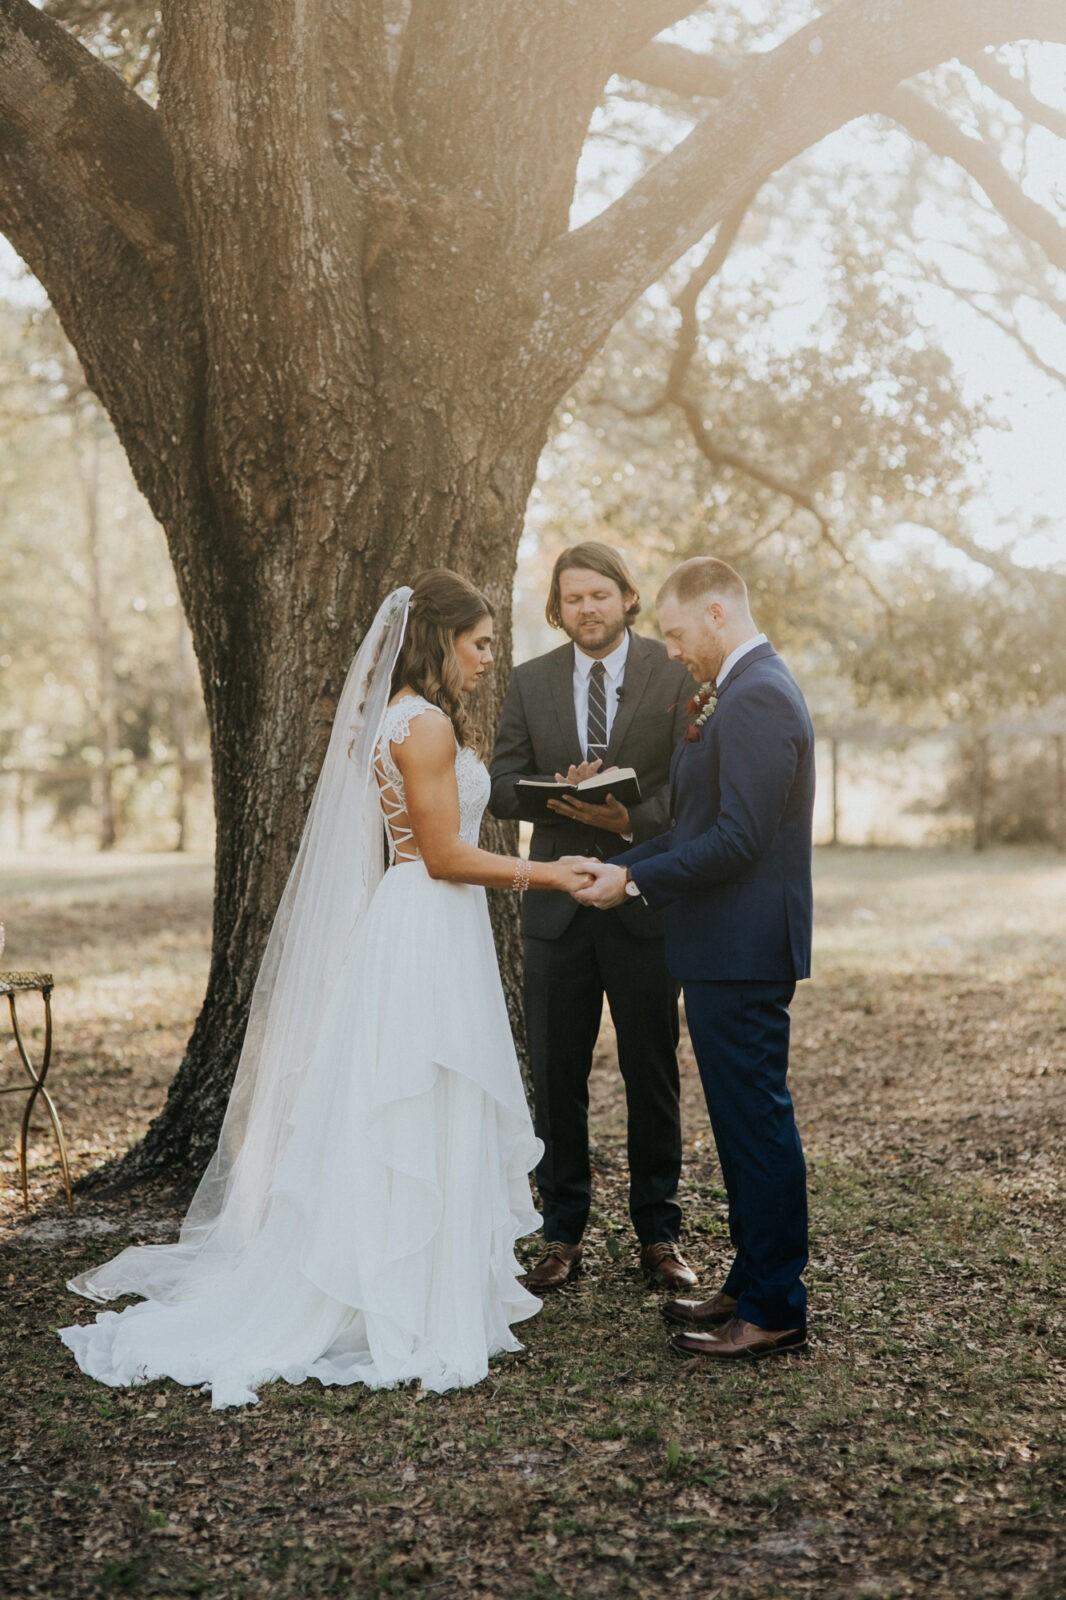 wedding under an oak tree